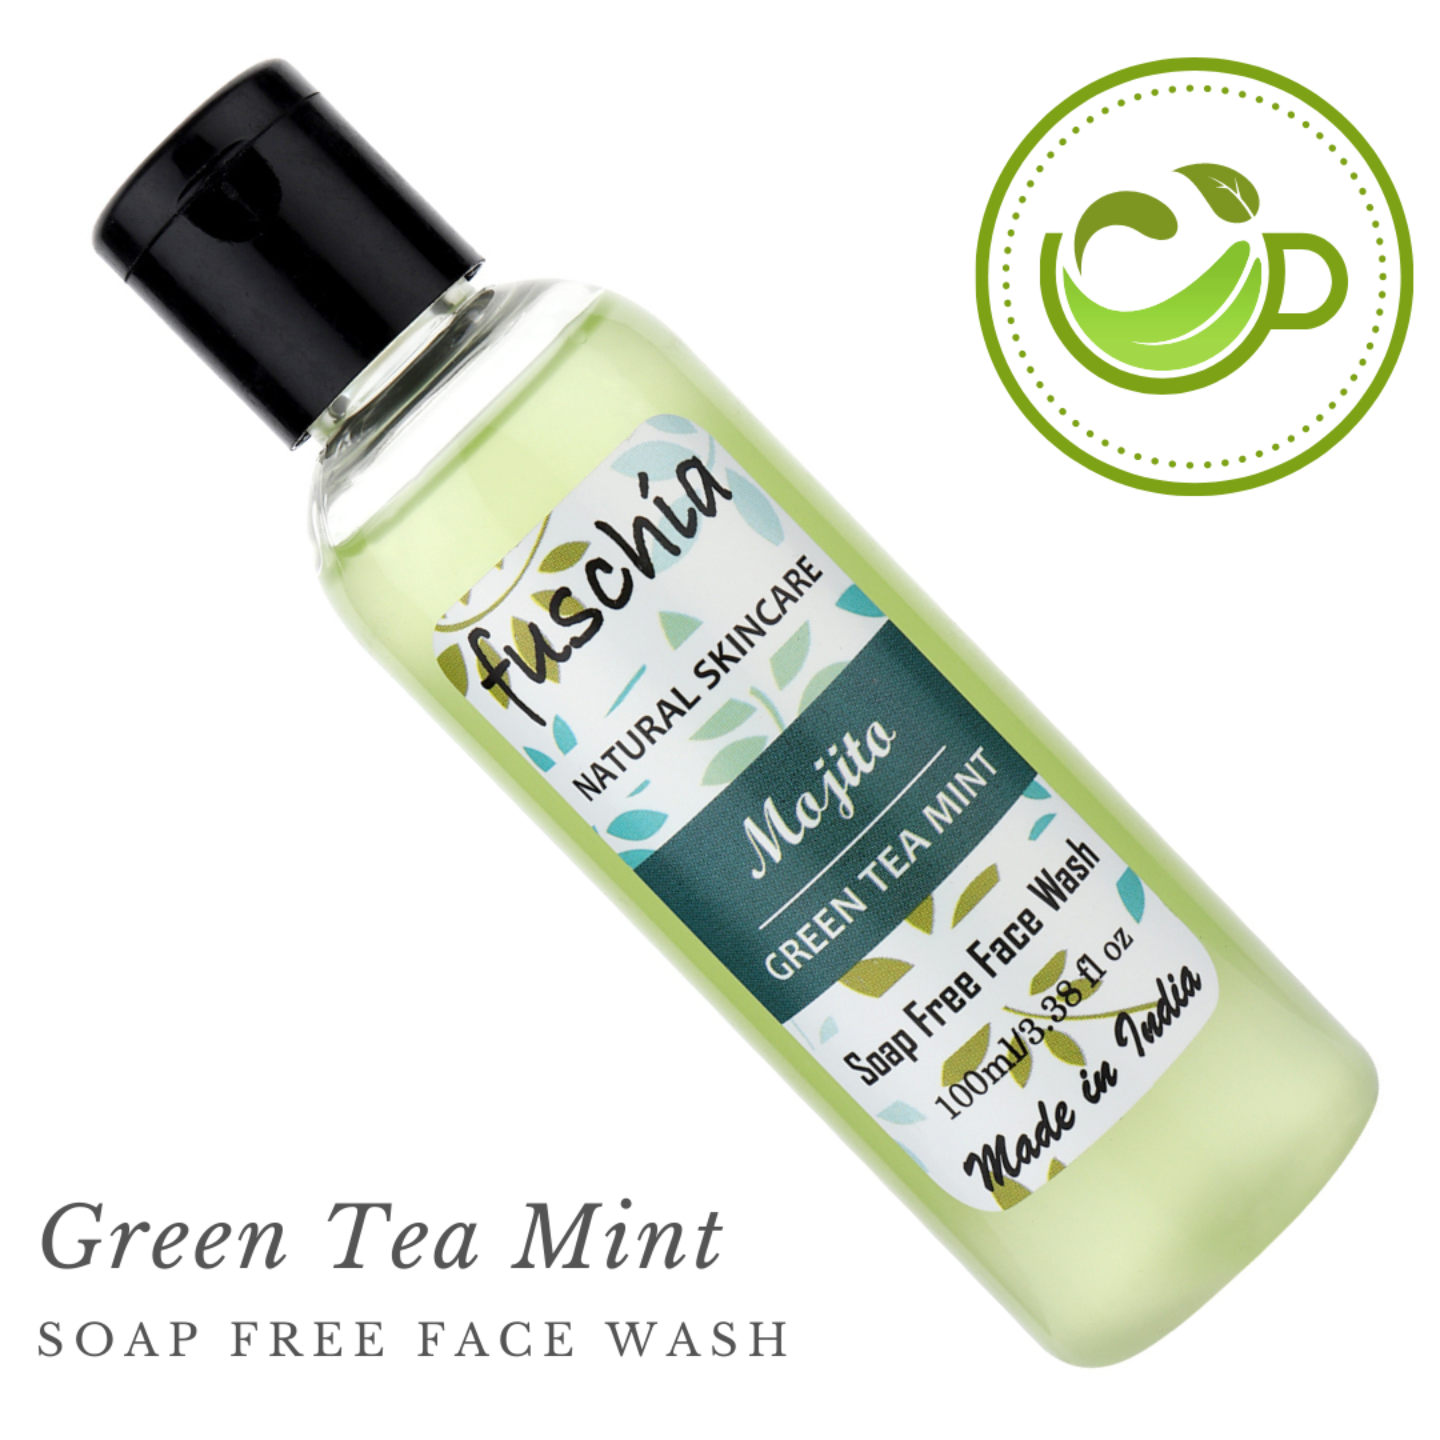 Fuschia Mojito Green Tea Mint Soap Free Face Wash - 100ml